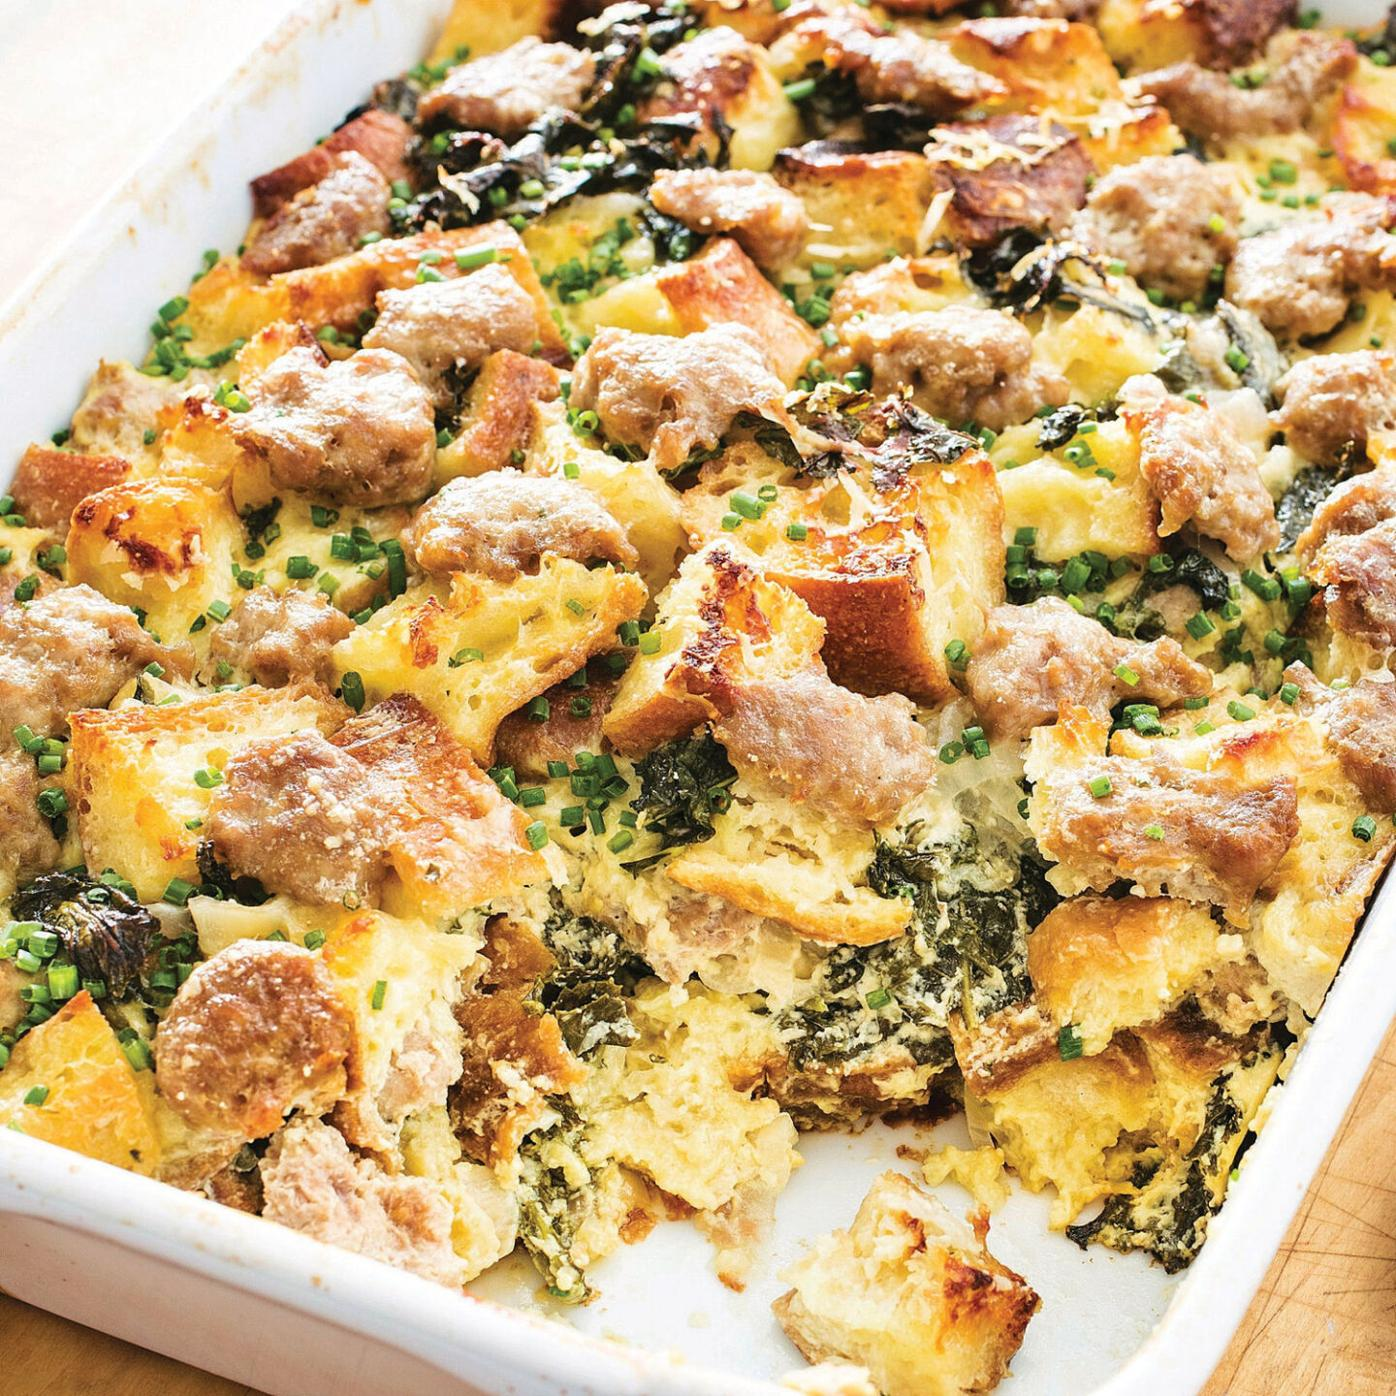 A dish perfect for a relaxed brunch at home